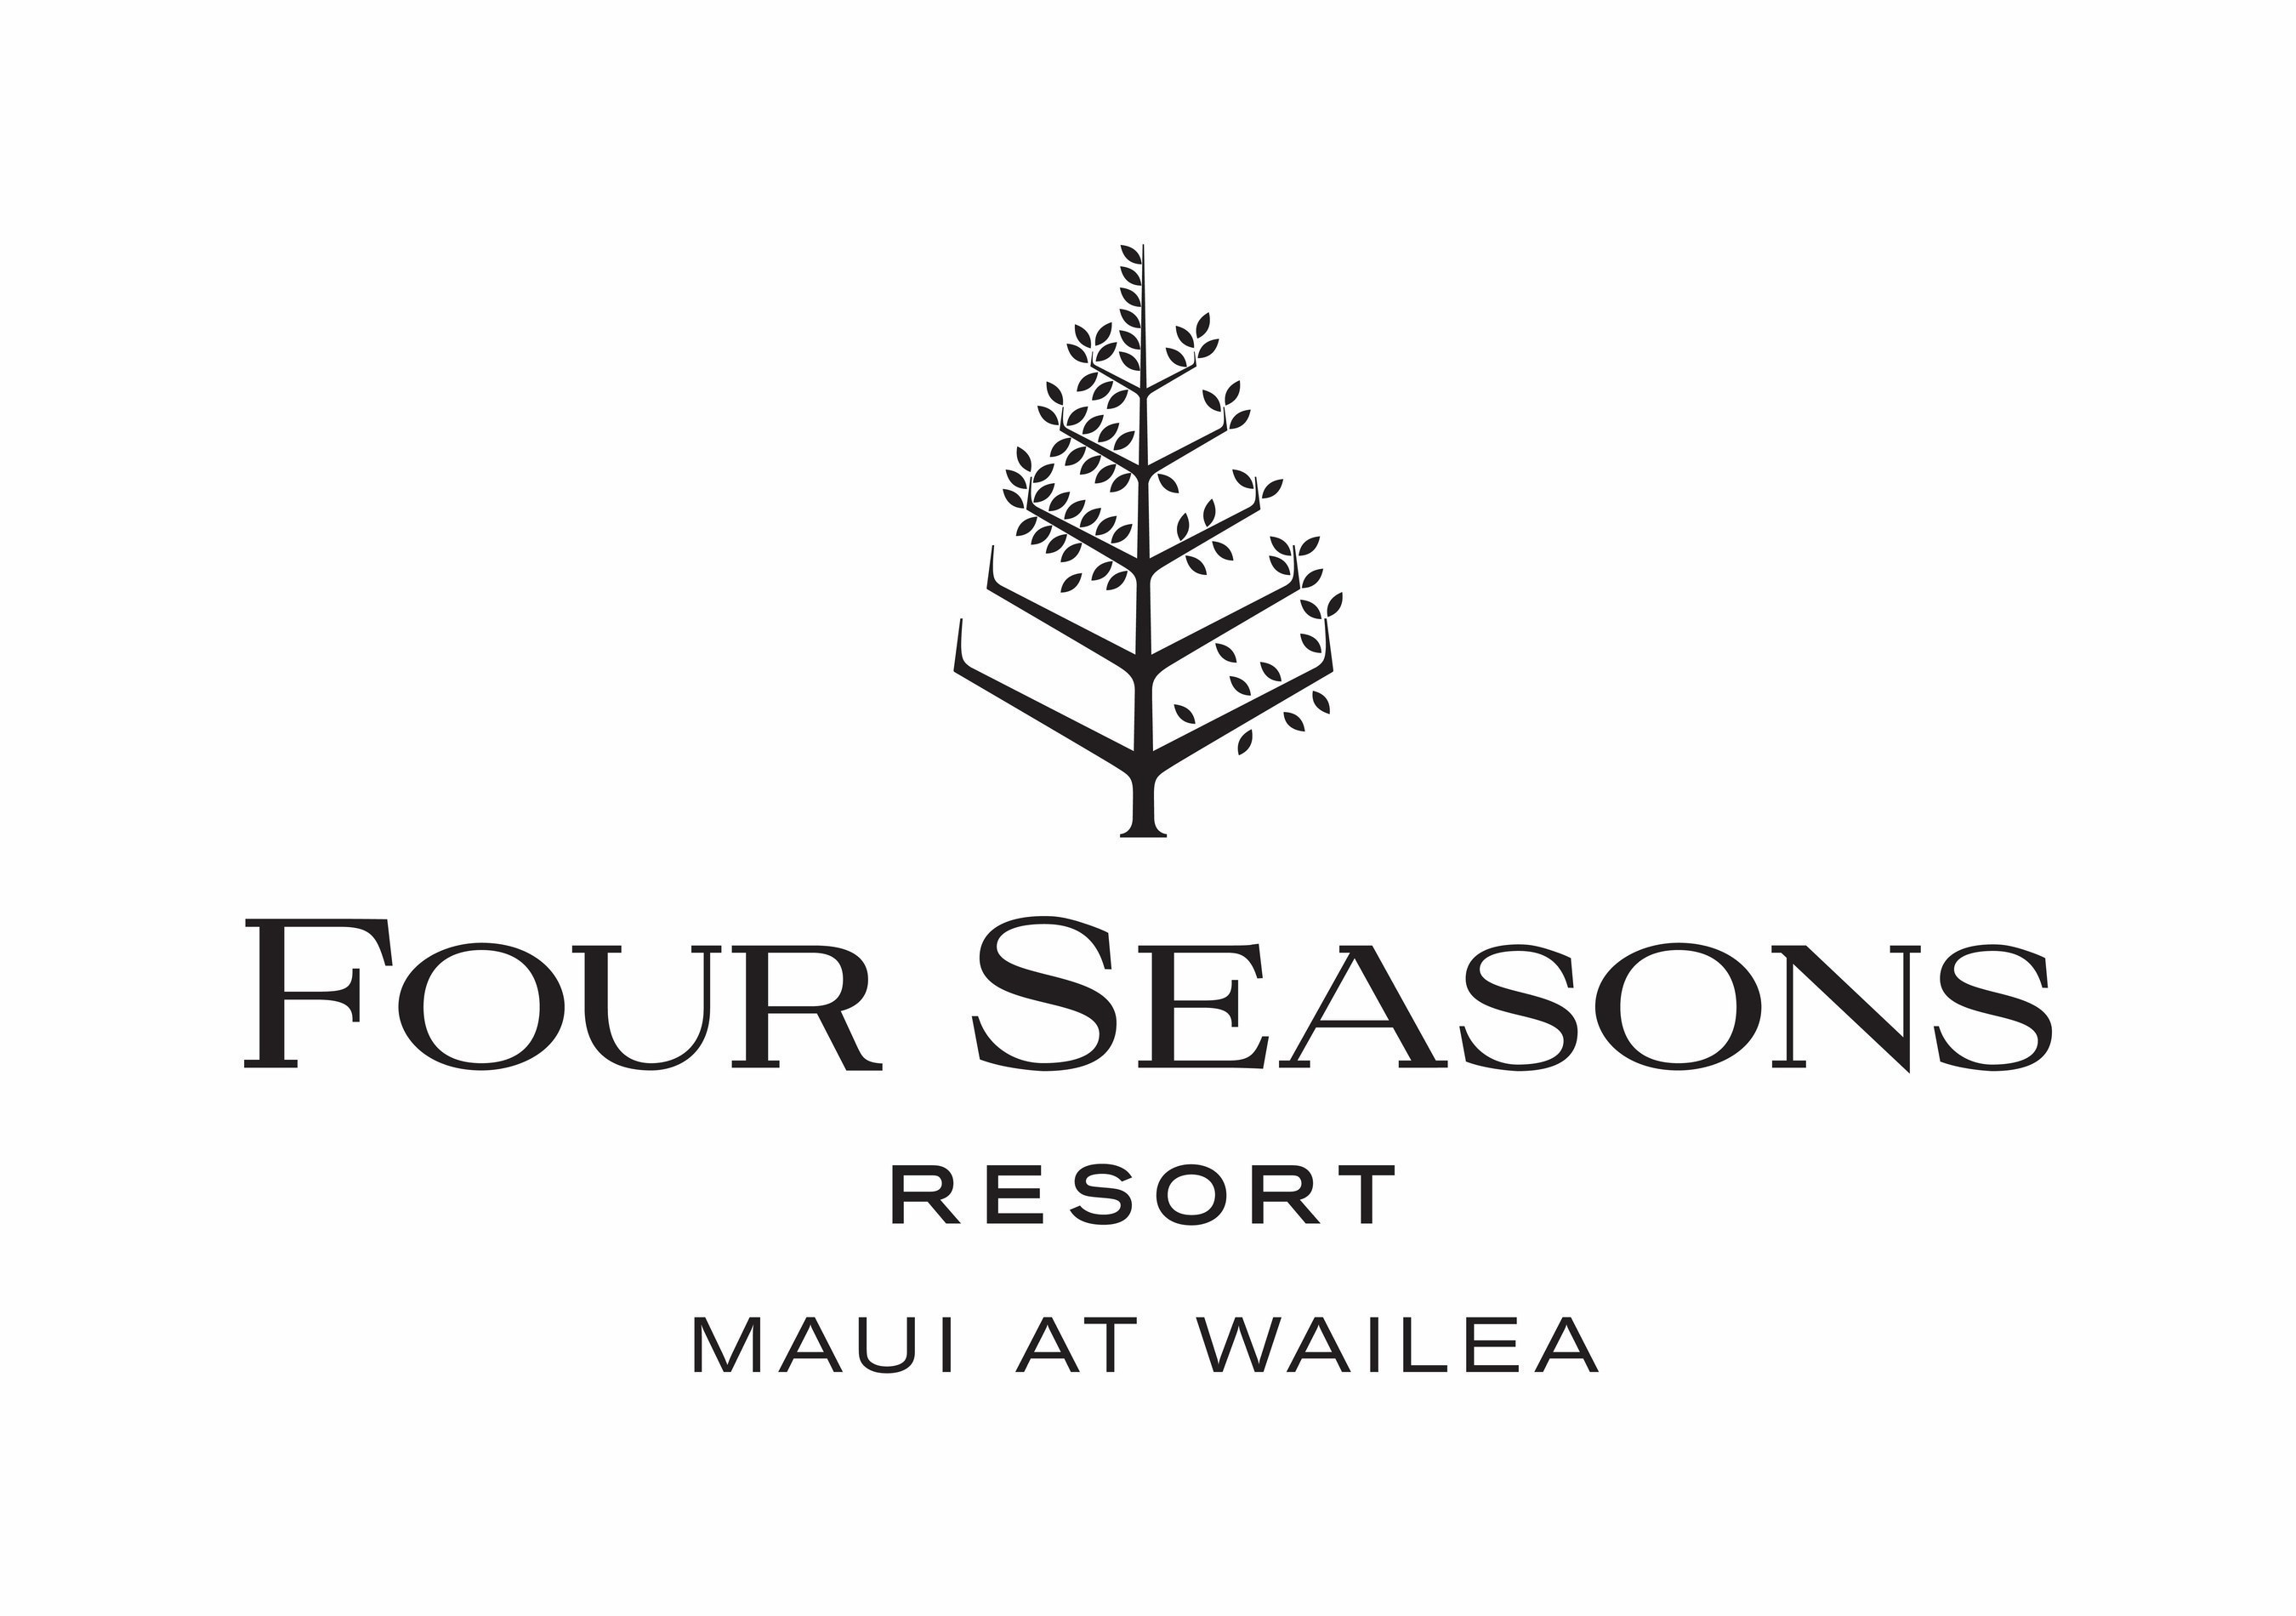 Four Seasons Resort Maui Invites Guests To Experience The